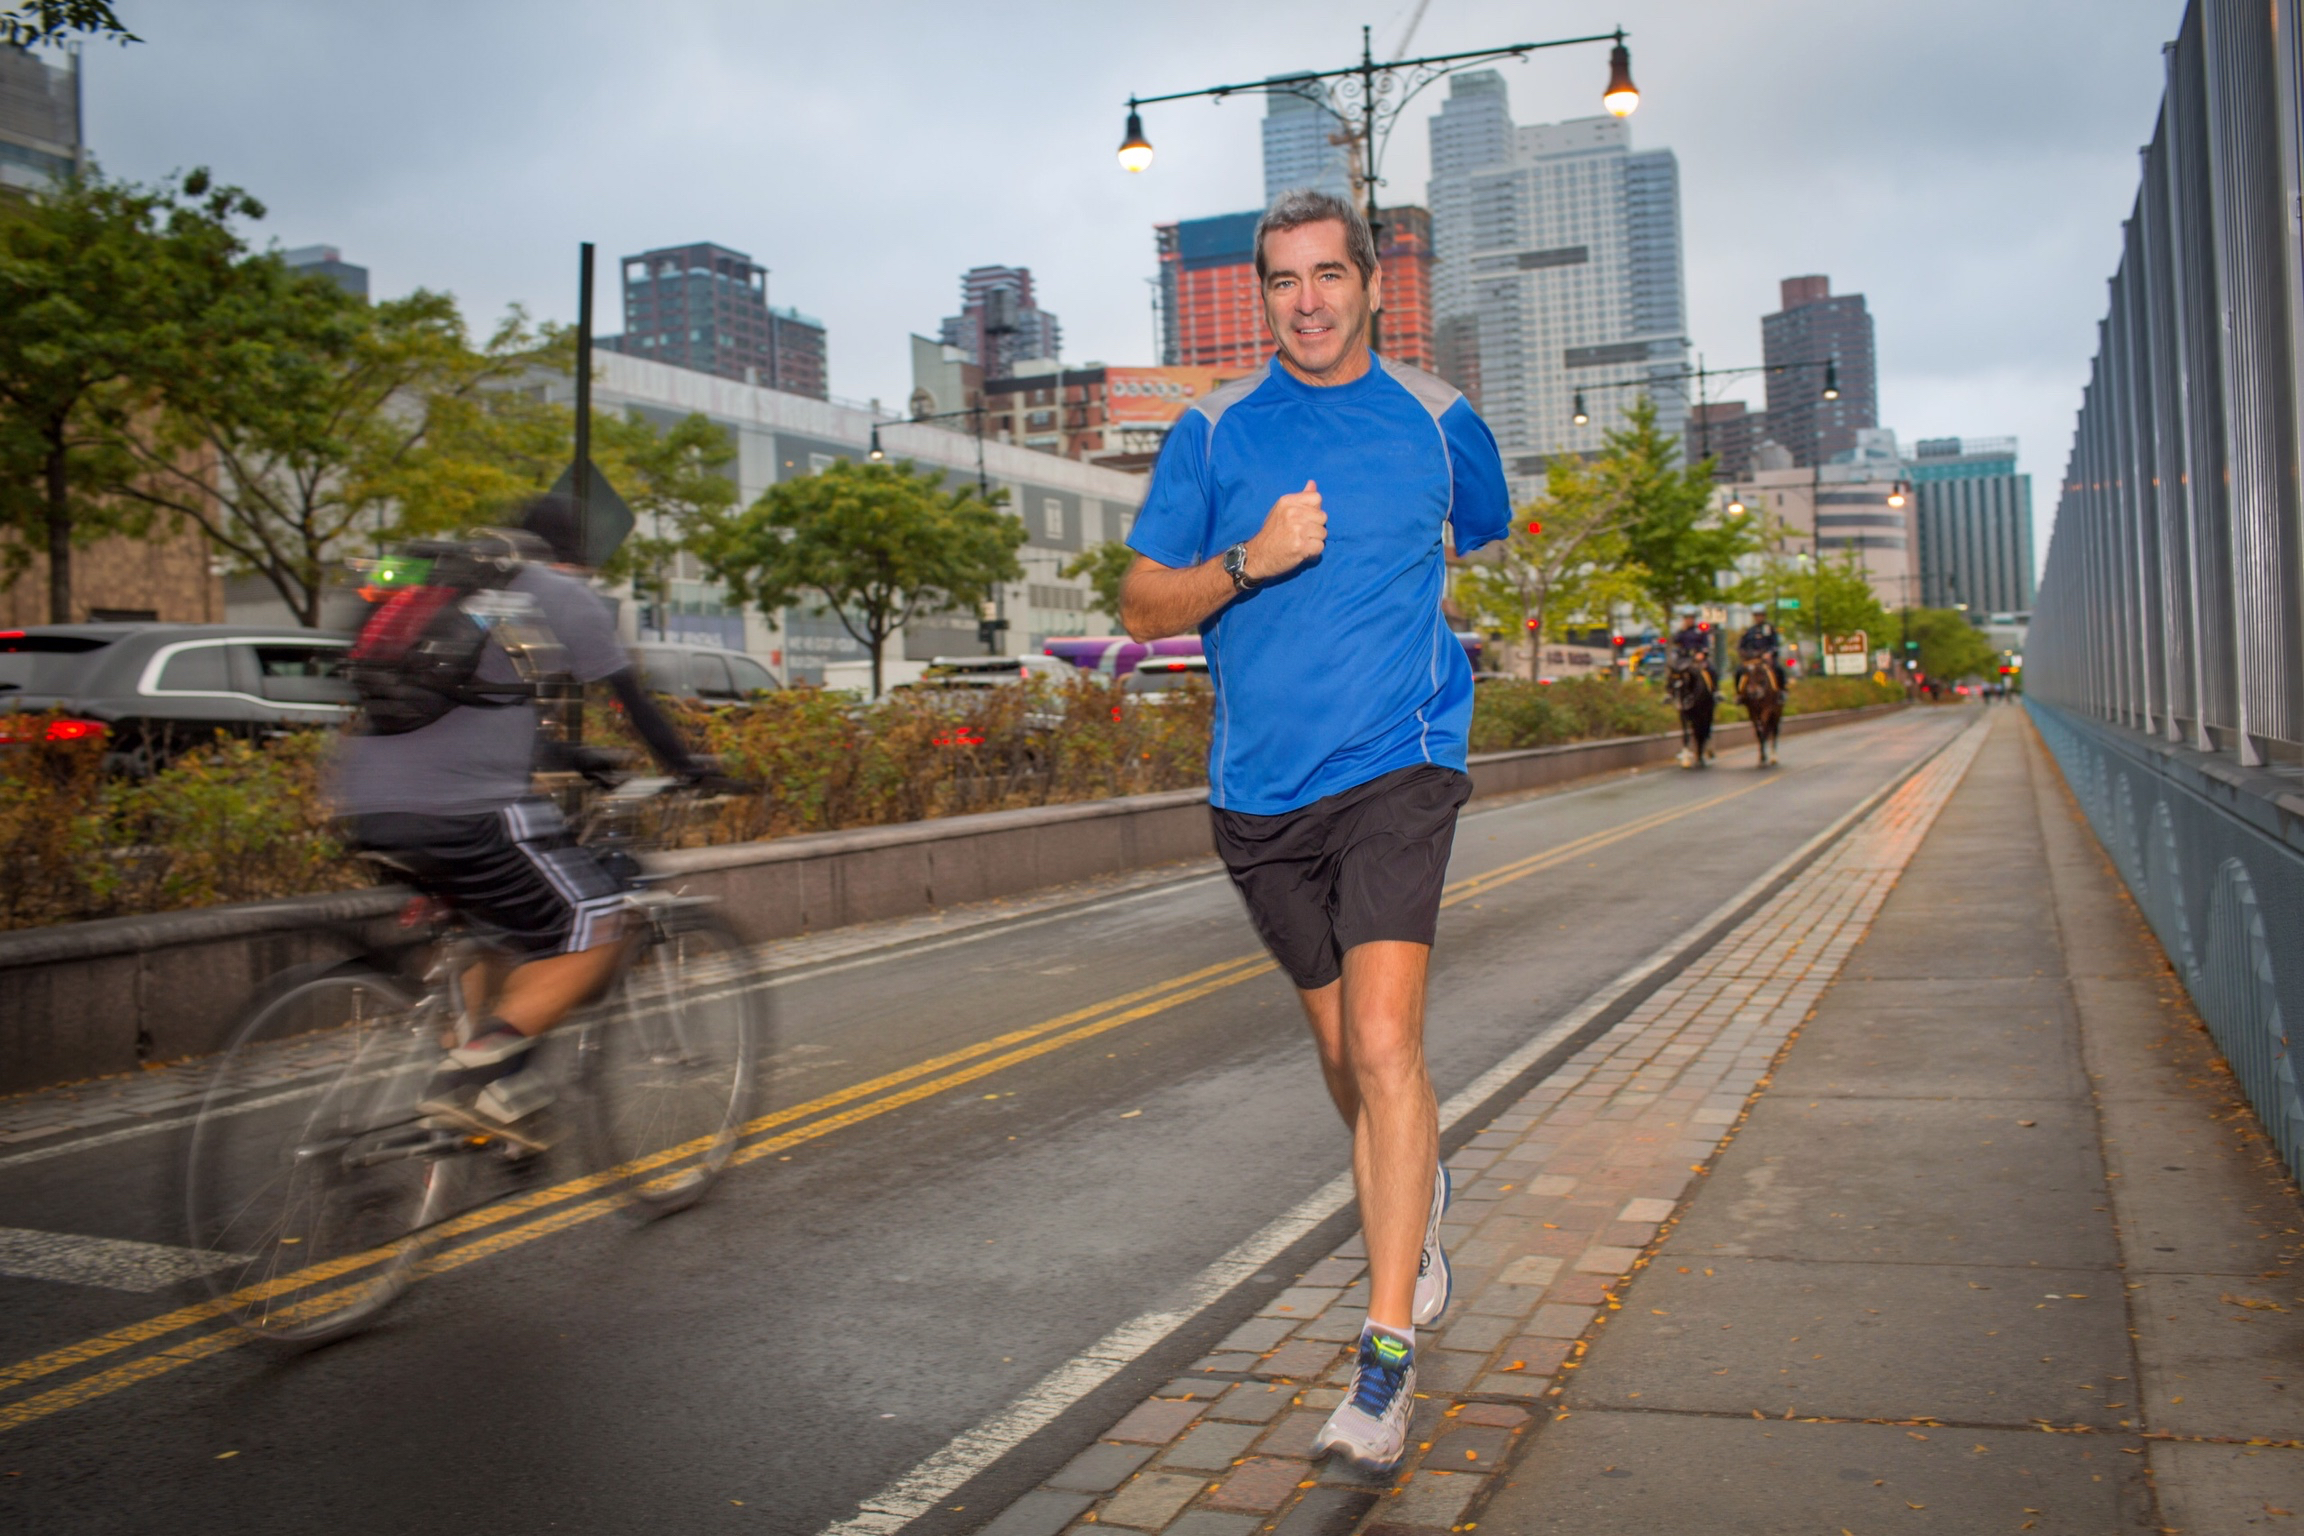 Running along the West Side Highway in Manhattan in September. Photo by Sandra Young